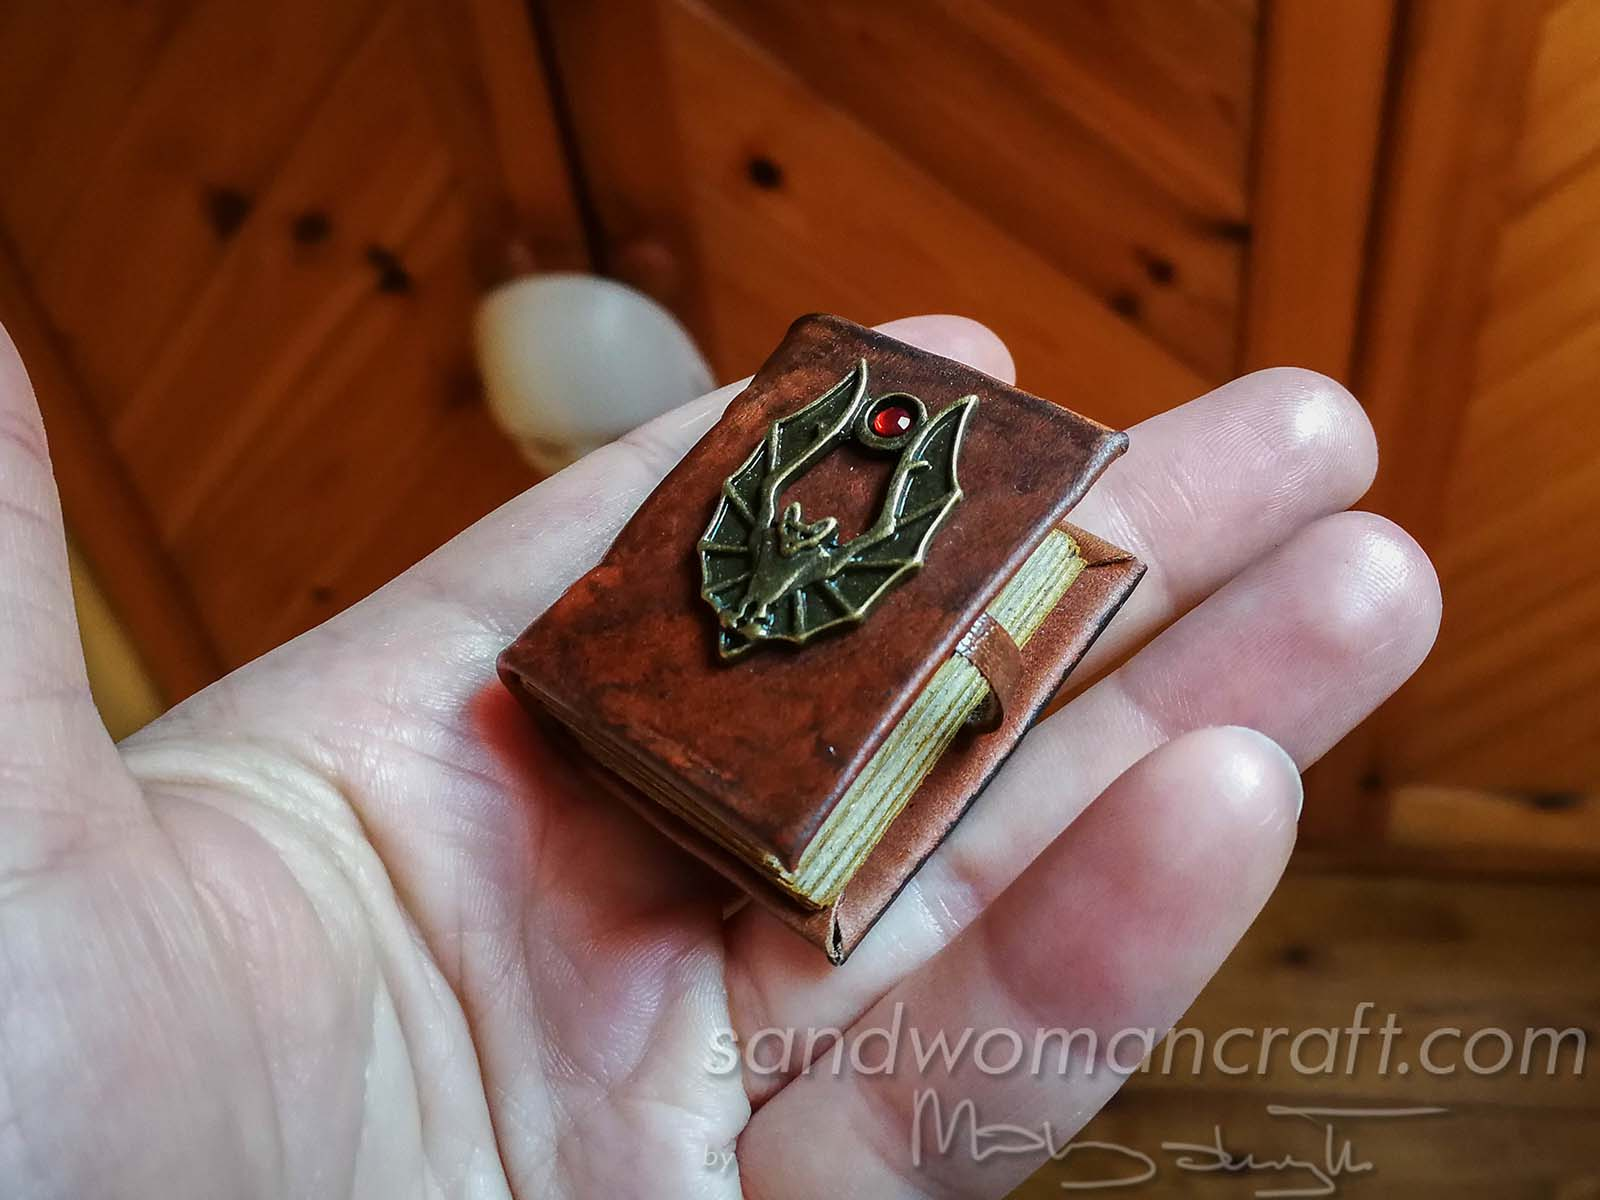 Miniature leather bound book with metal bat in 1:6 scale